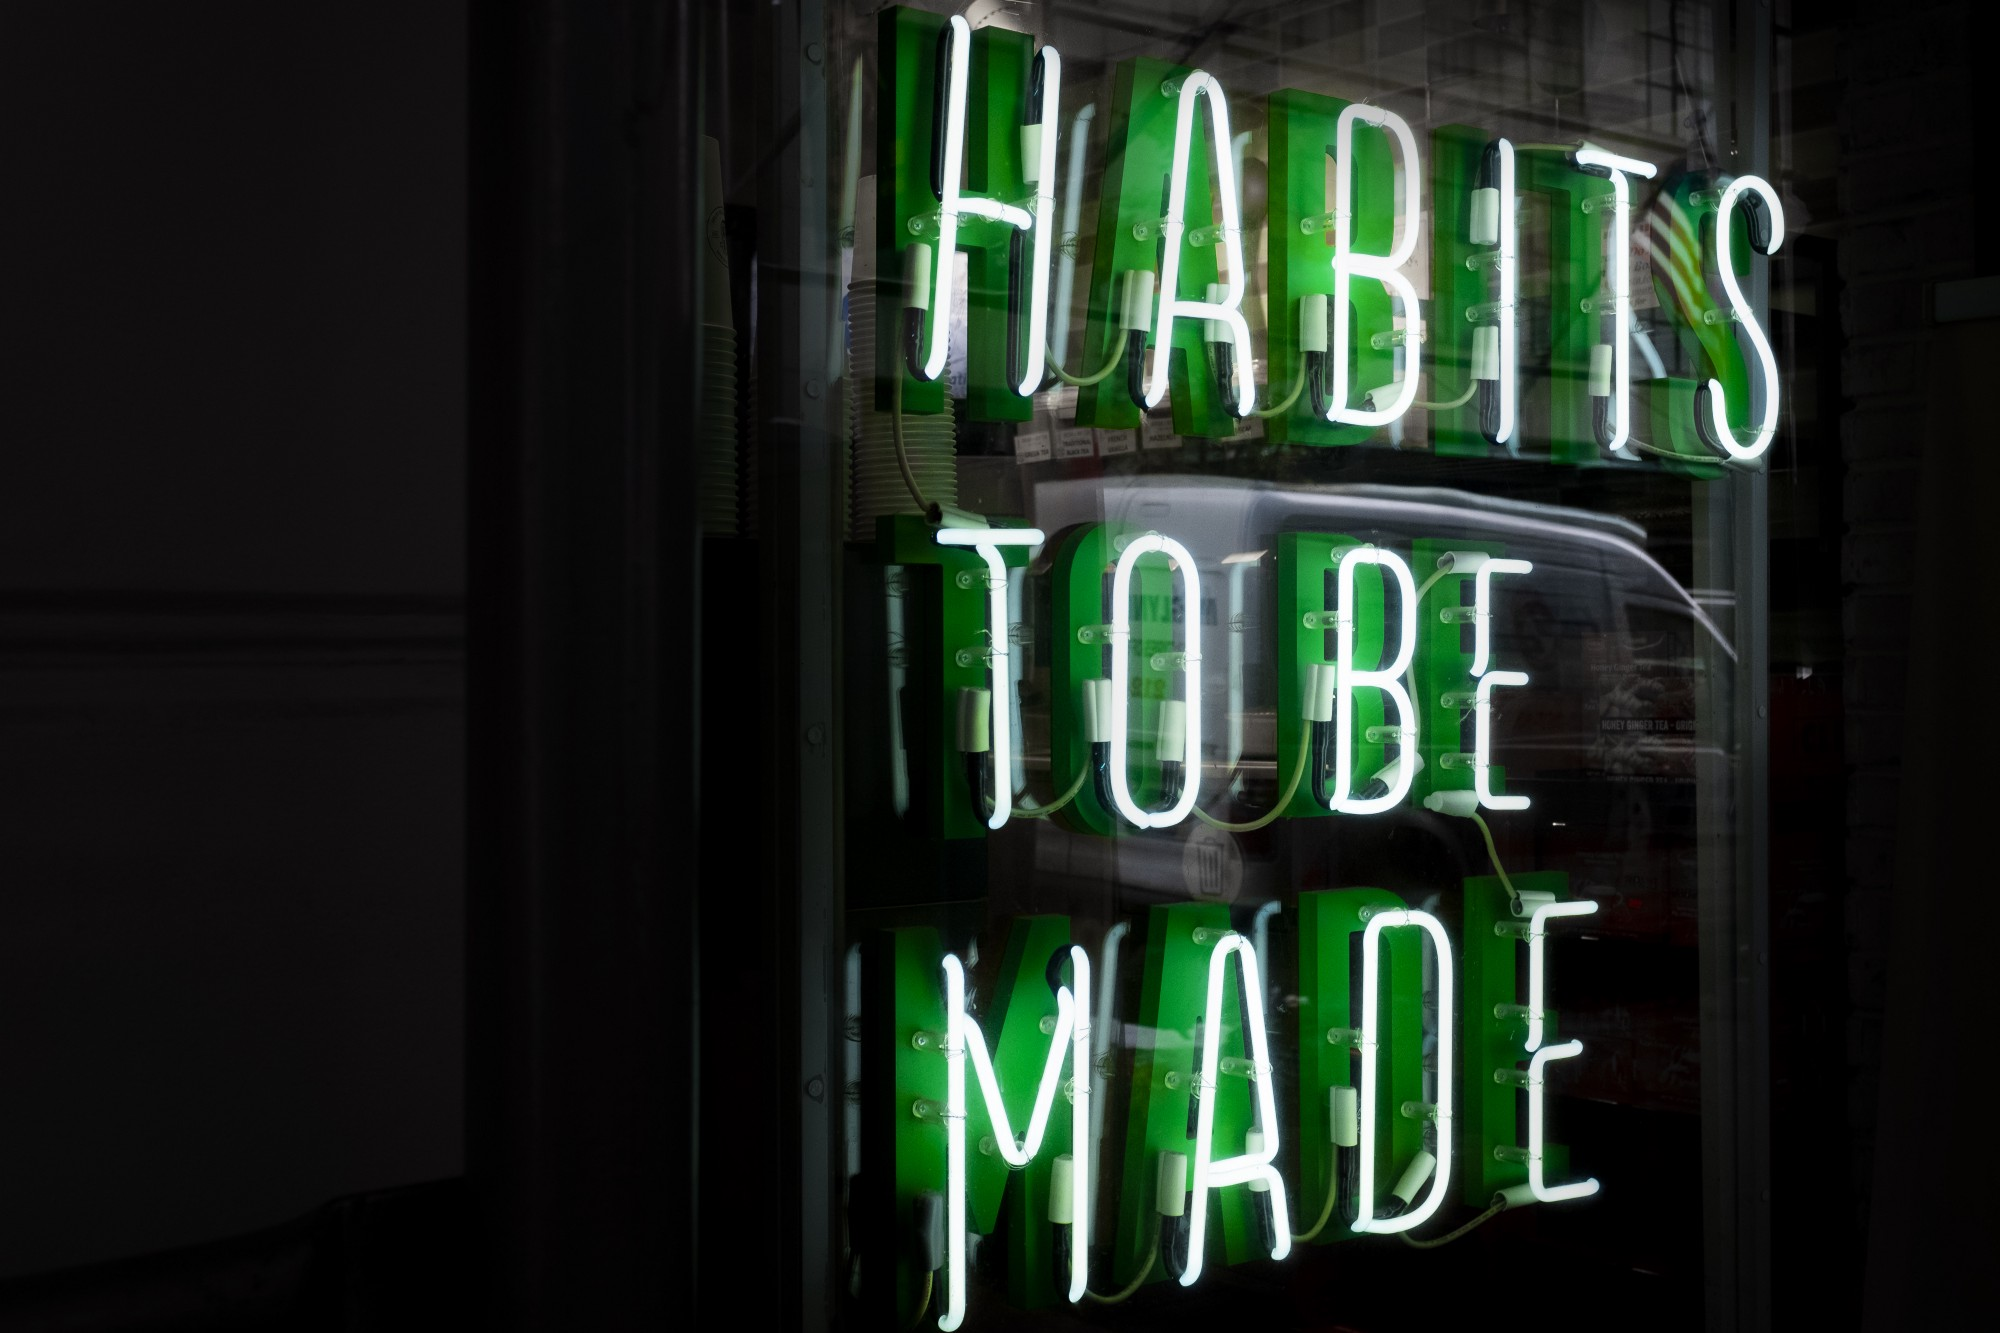 """The words """"Habits to be made"""" in neon light sign."""